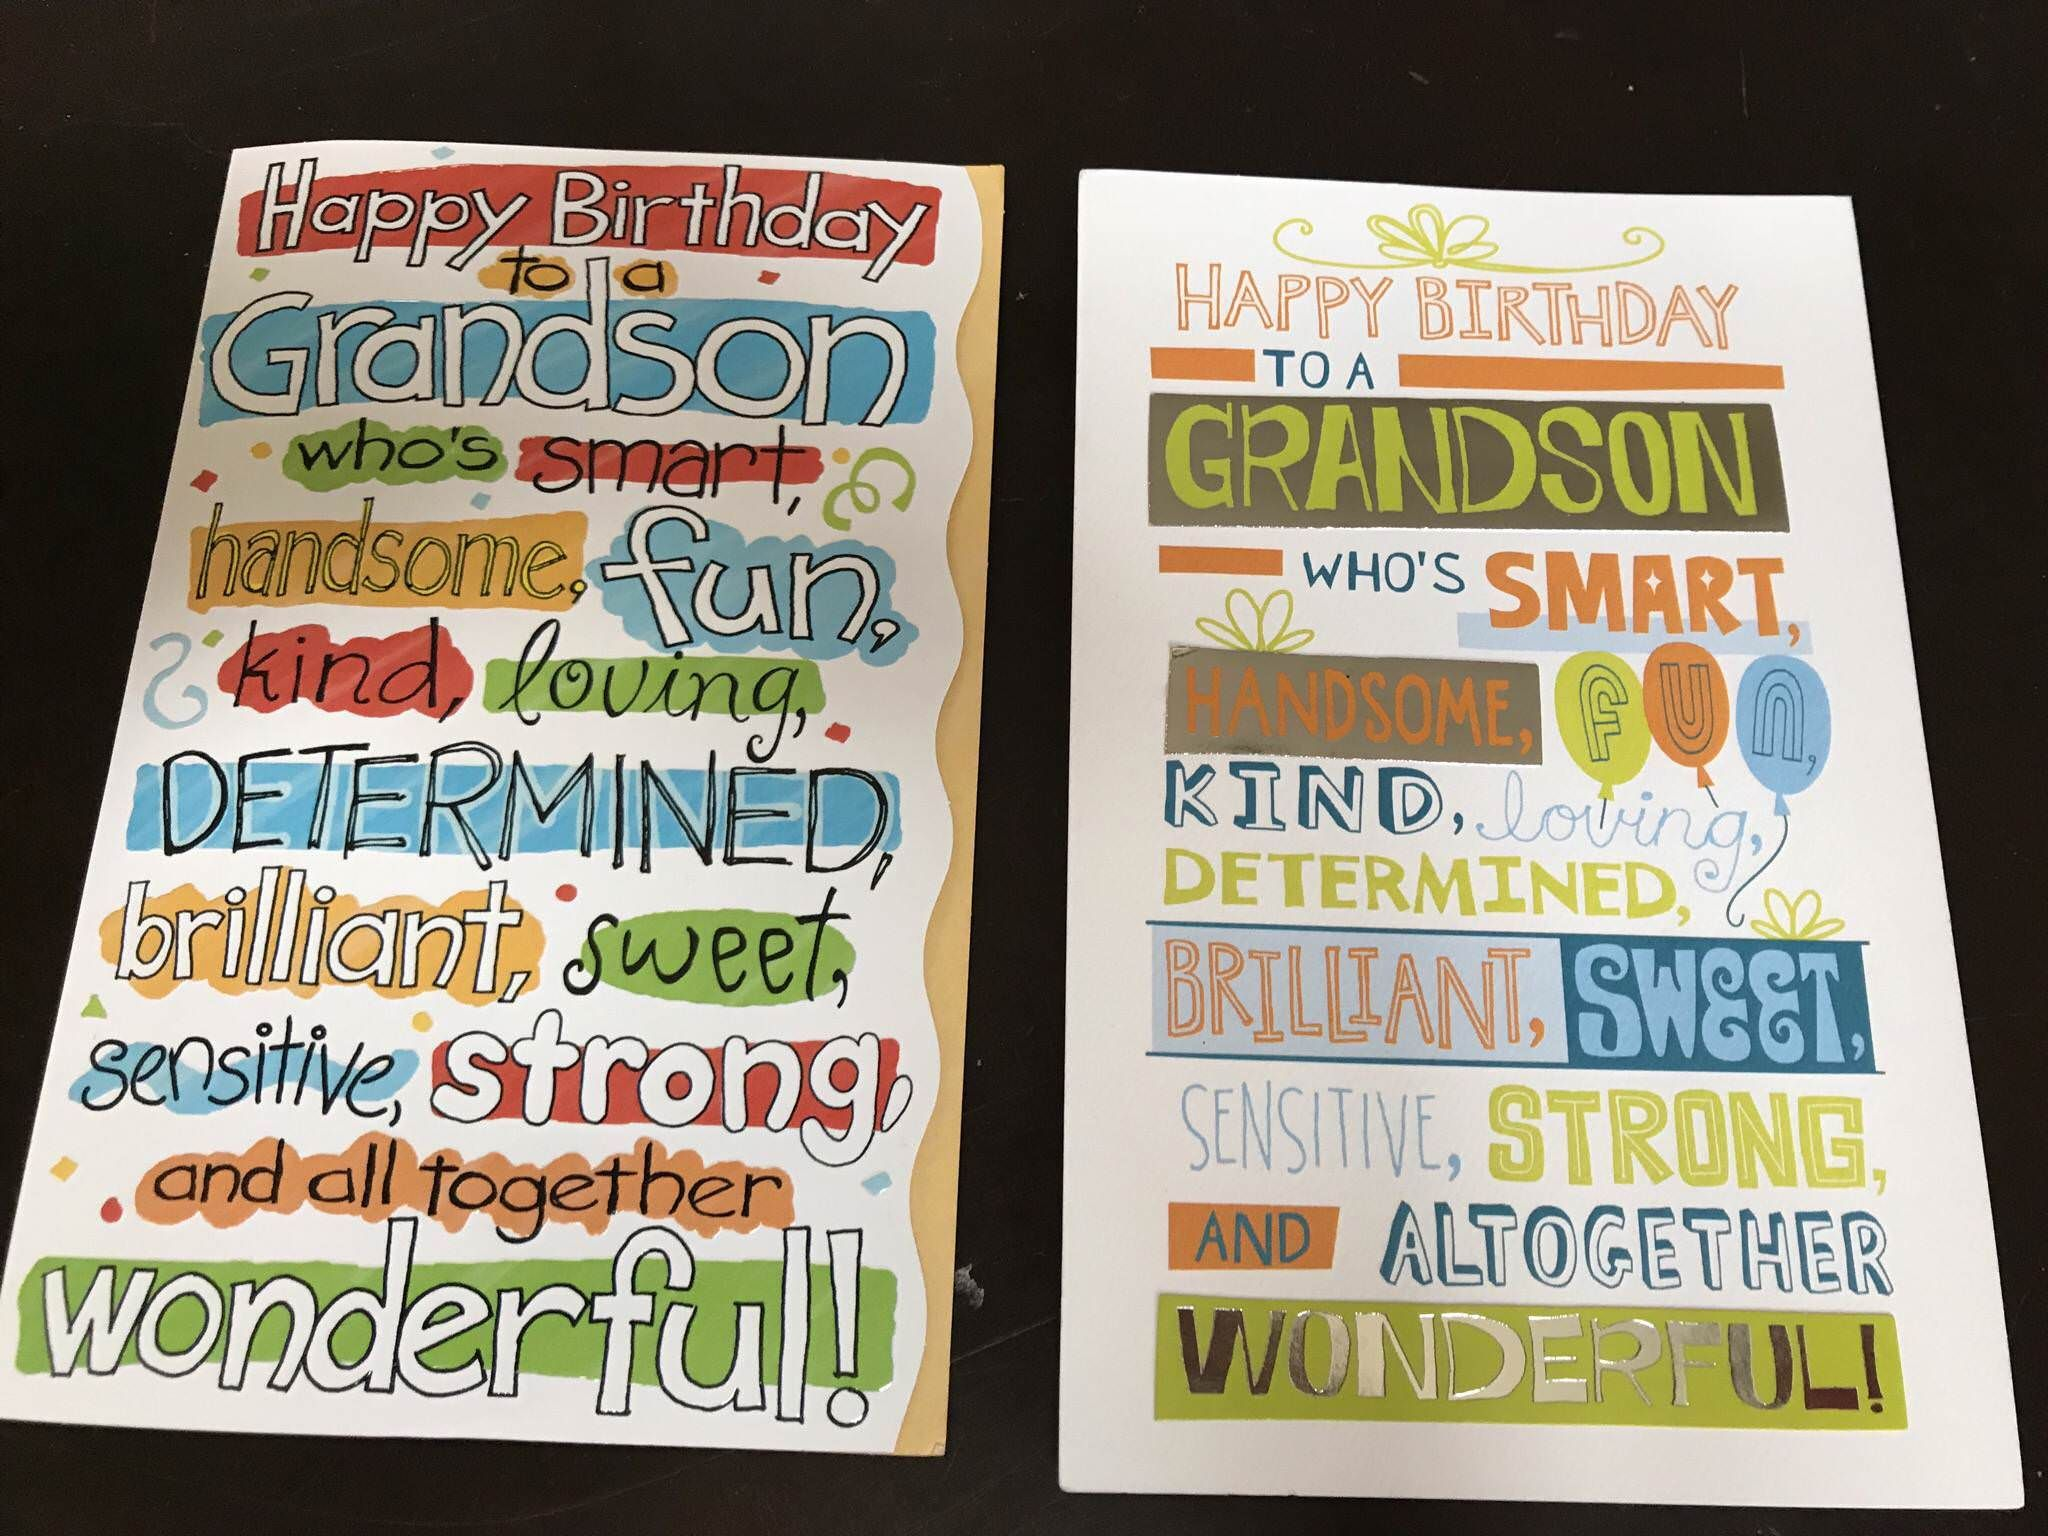 My son received birthday cards from both sets of grandparents who